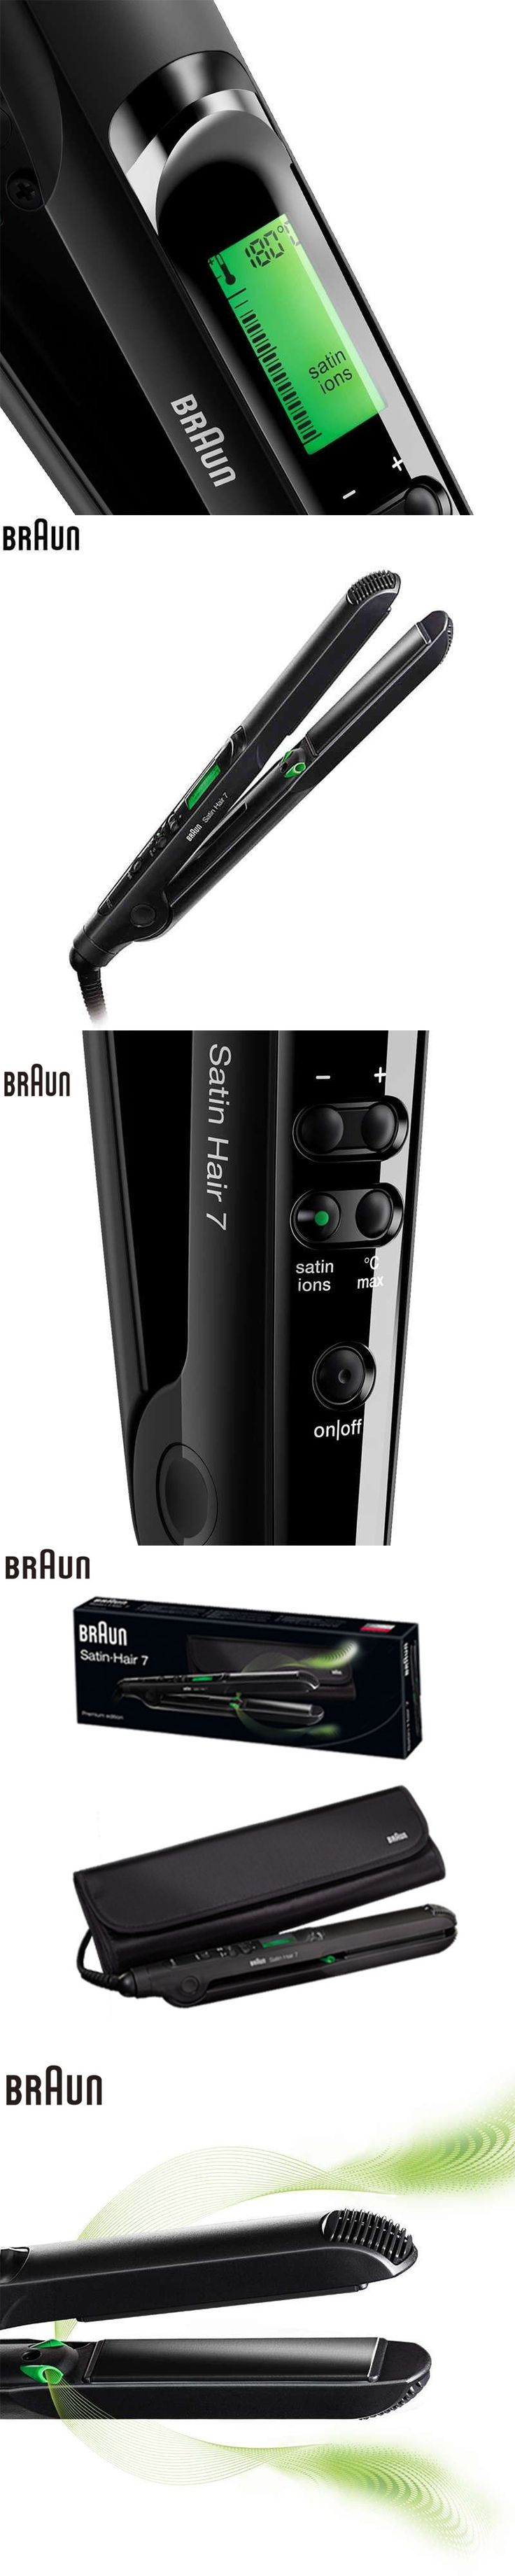 Braun ST730 Hair Curler & Straightener Hair Roller Curling Wand Hair styling tools Hair Protector